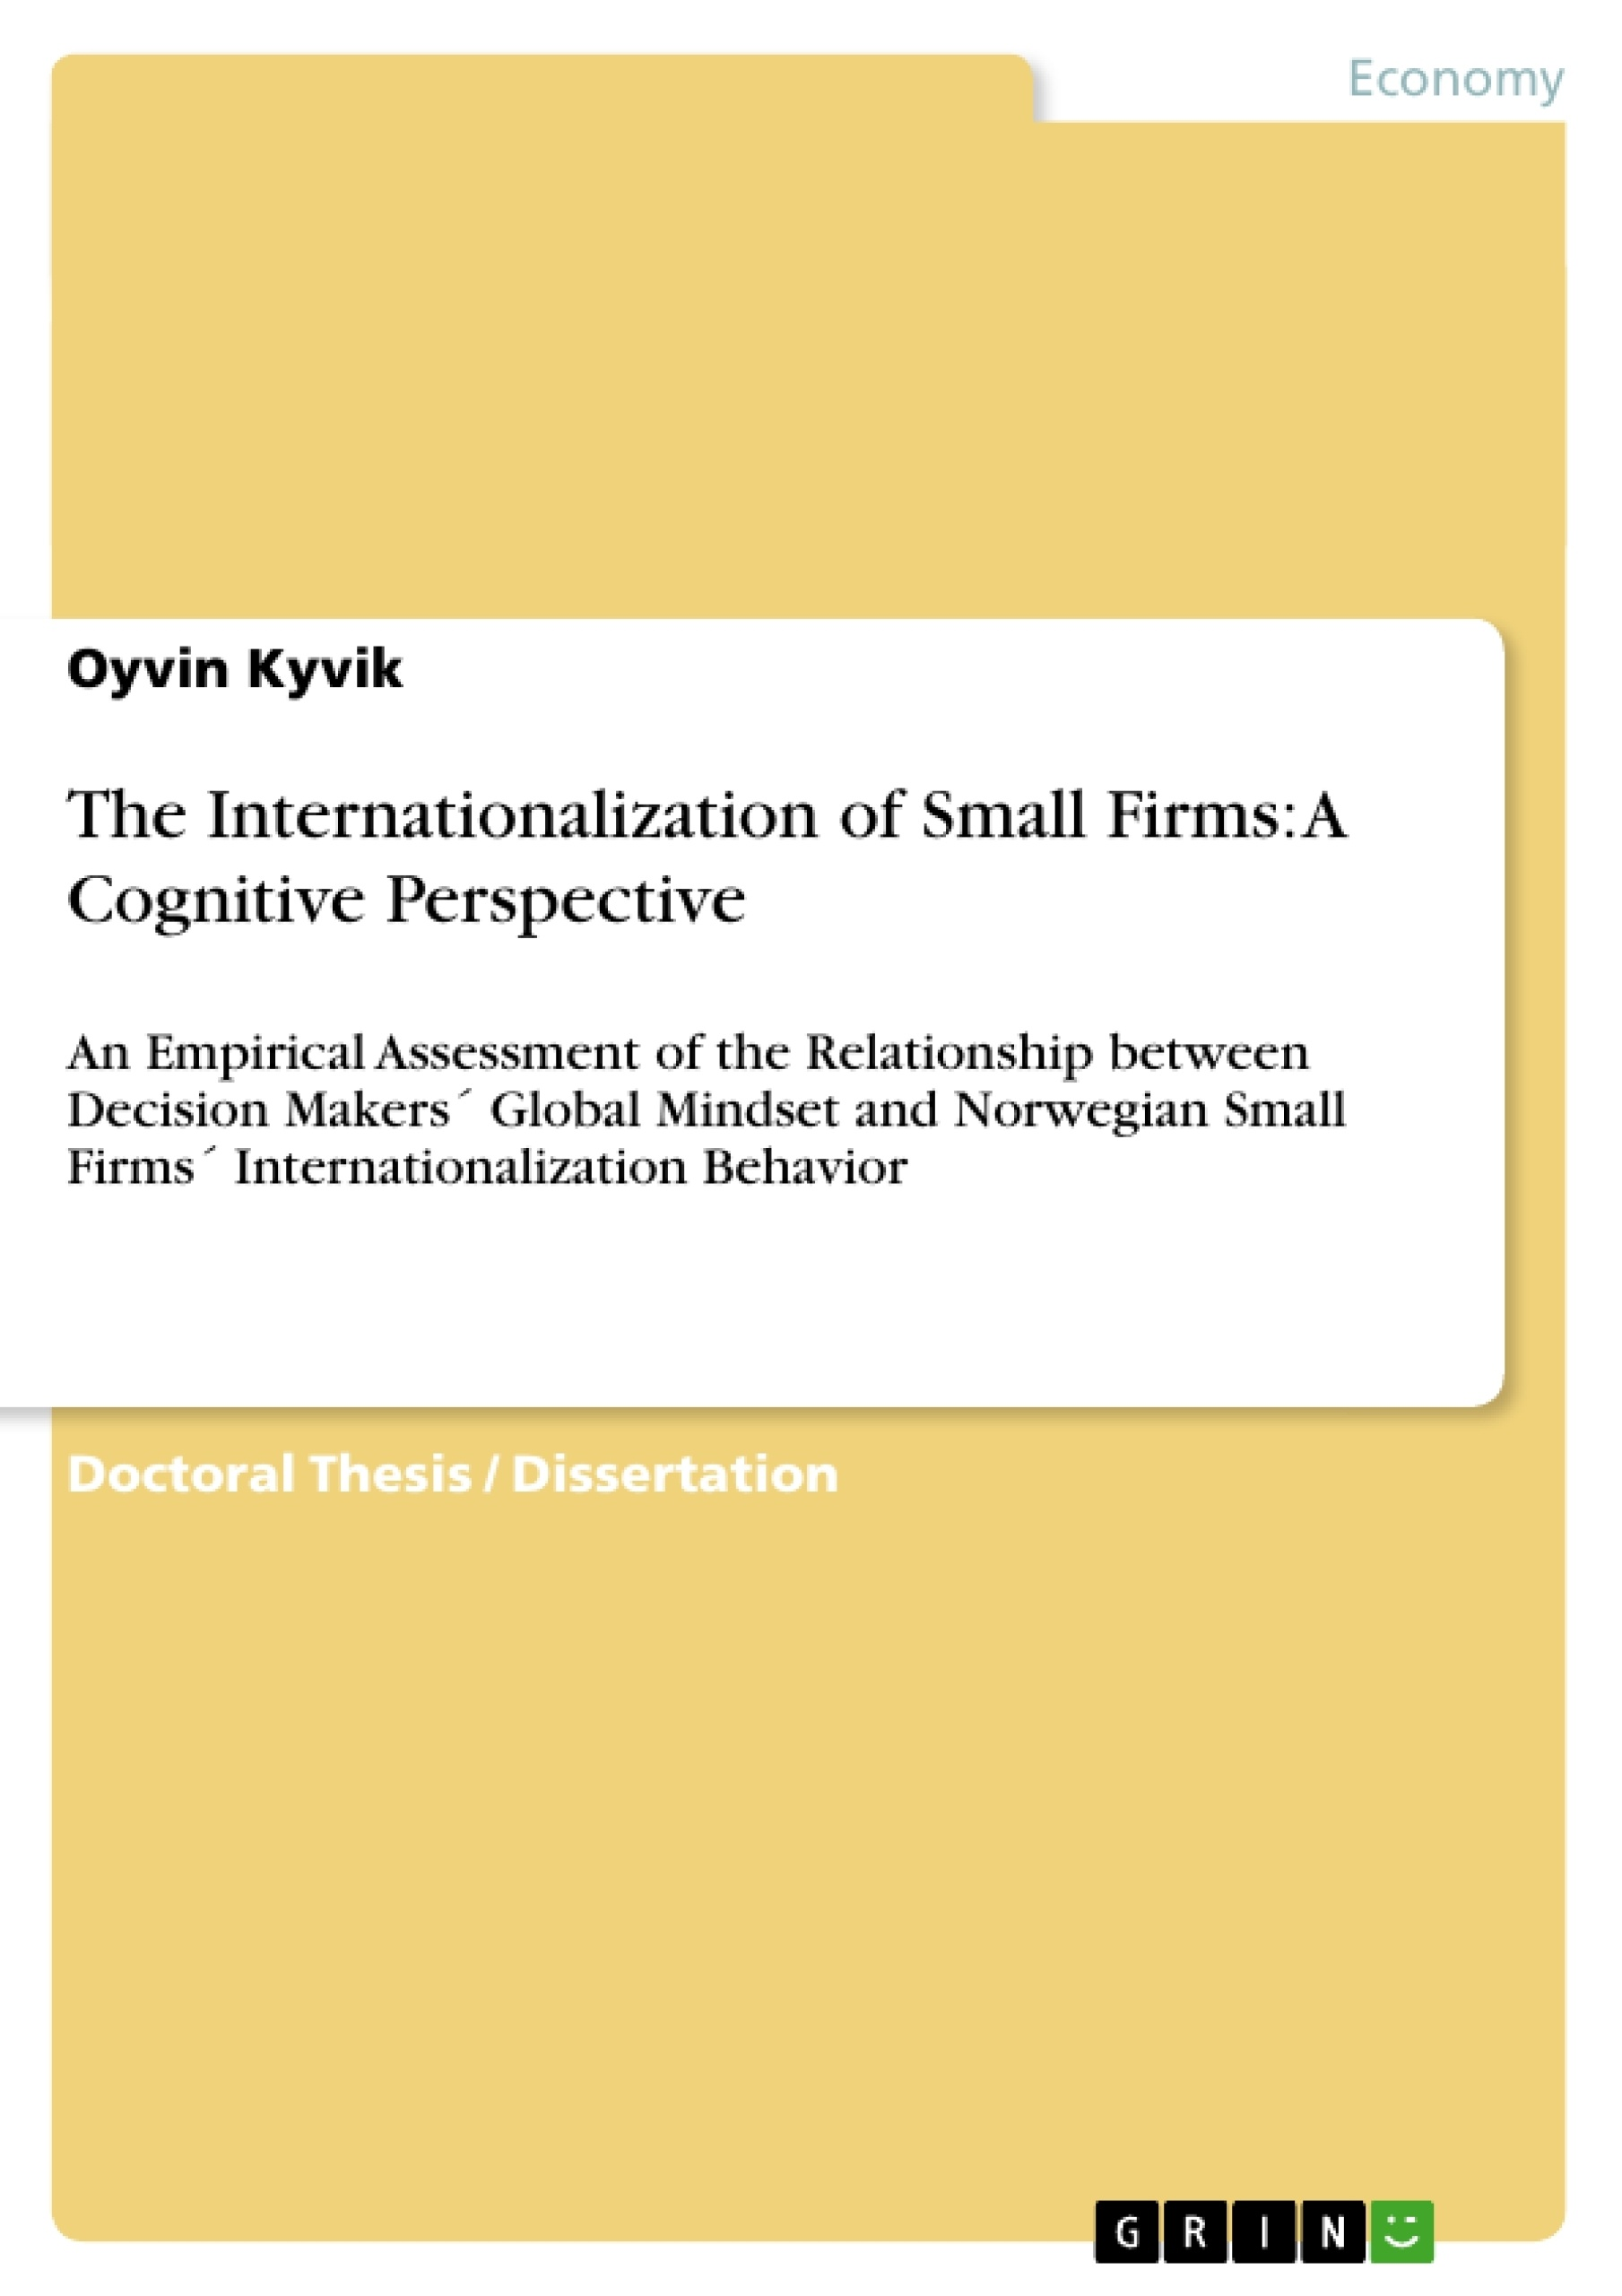 Title: The Internationalization of Small Firms: A Cognitive Perspective